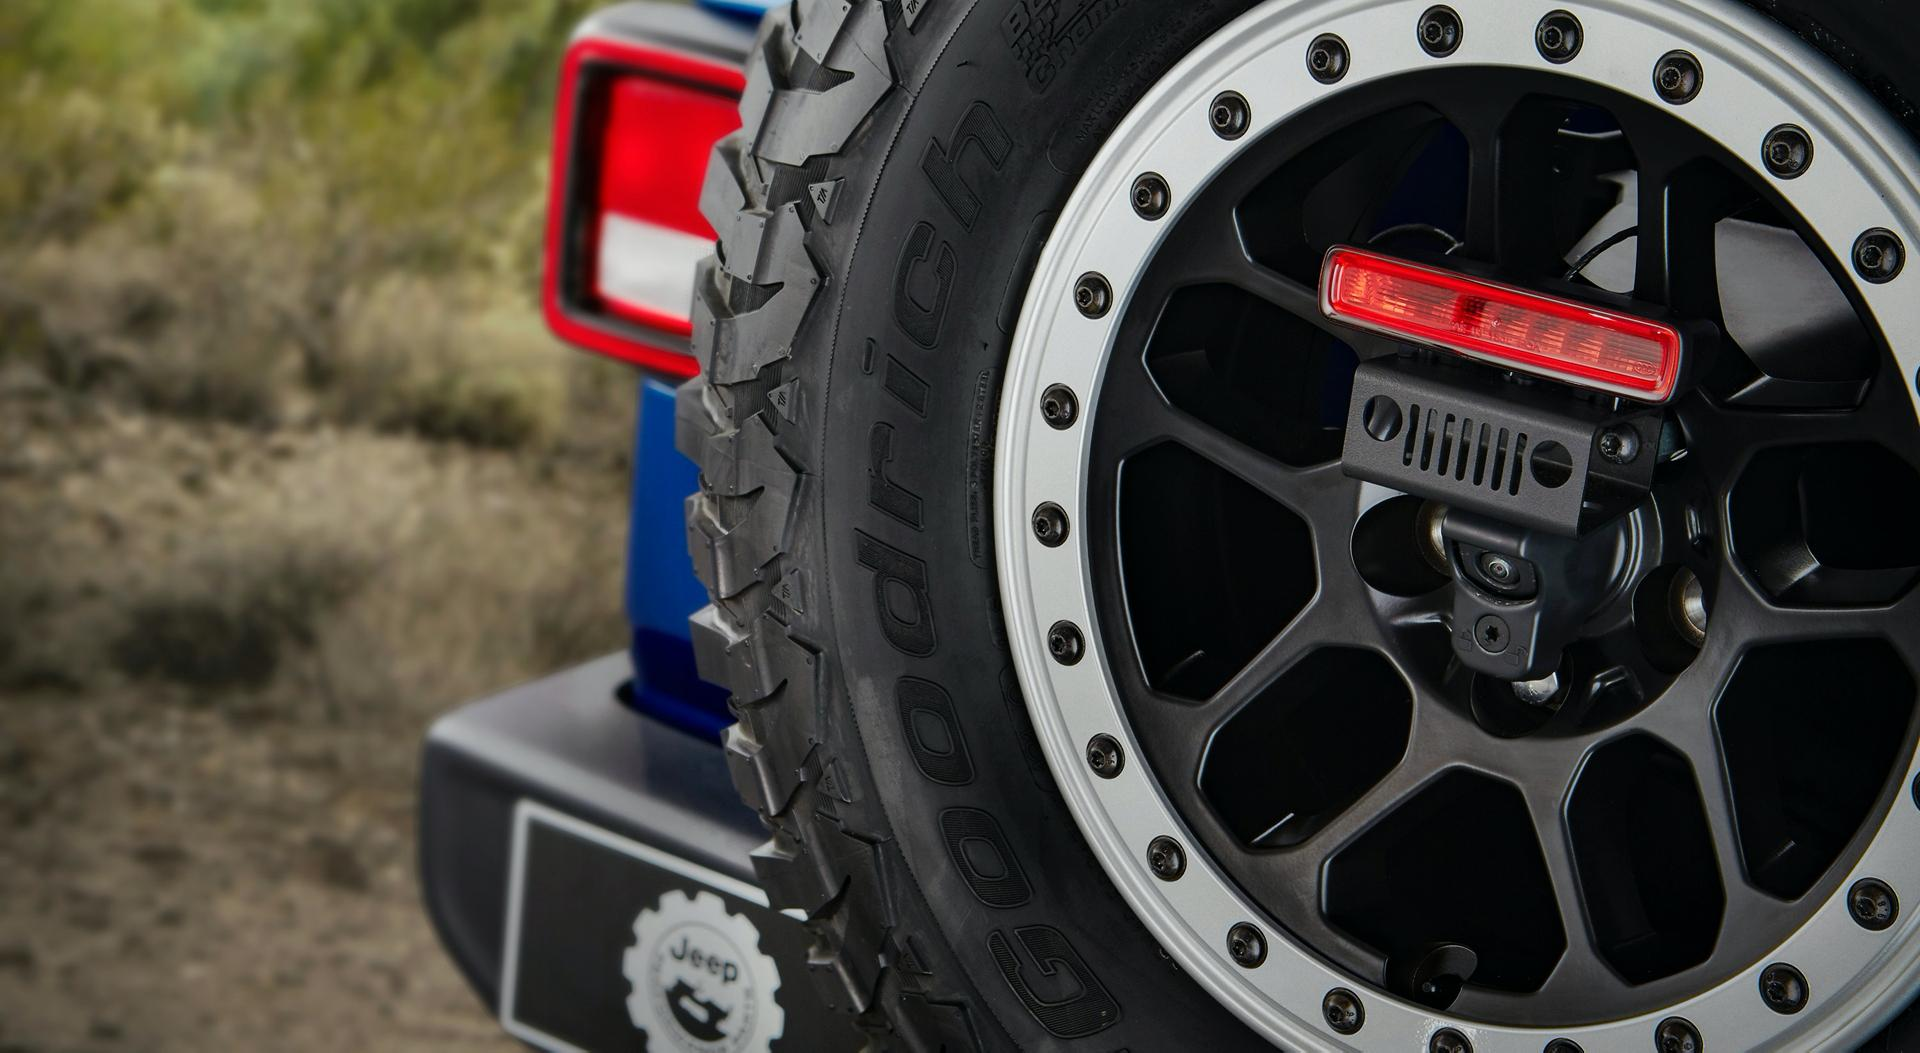 Jeep-Wrangler-JPP-20-Limited-Edition-8